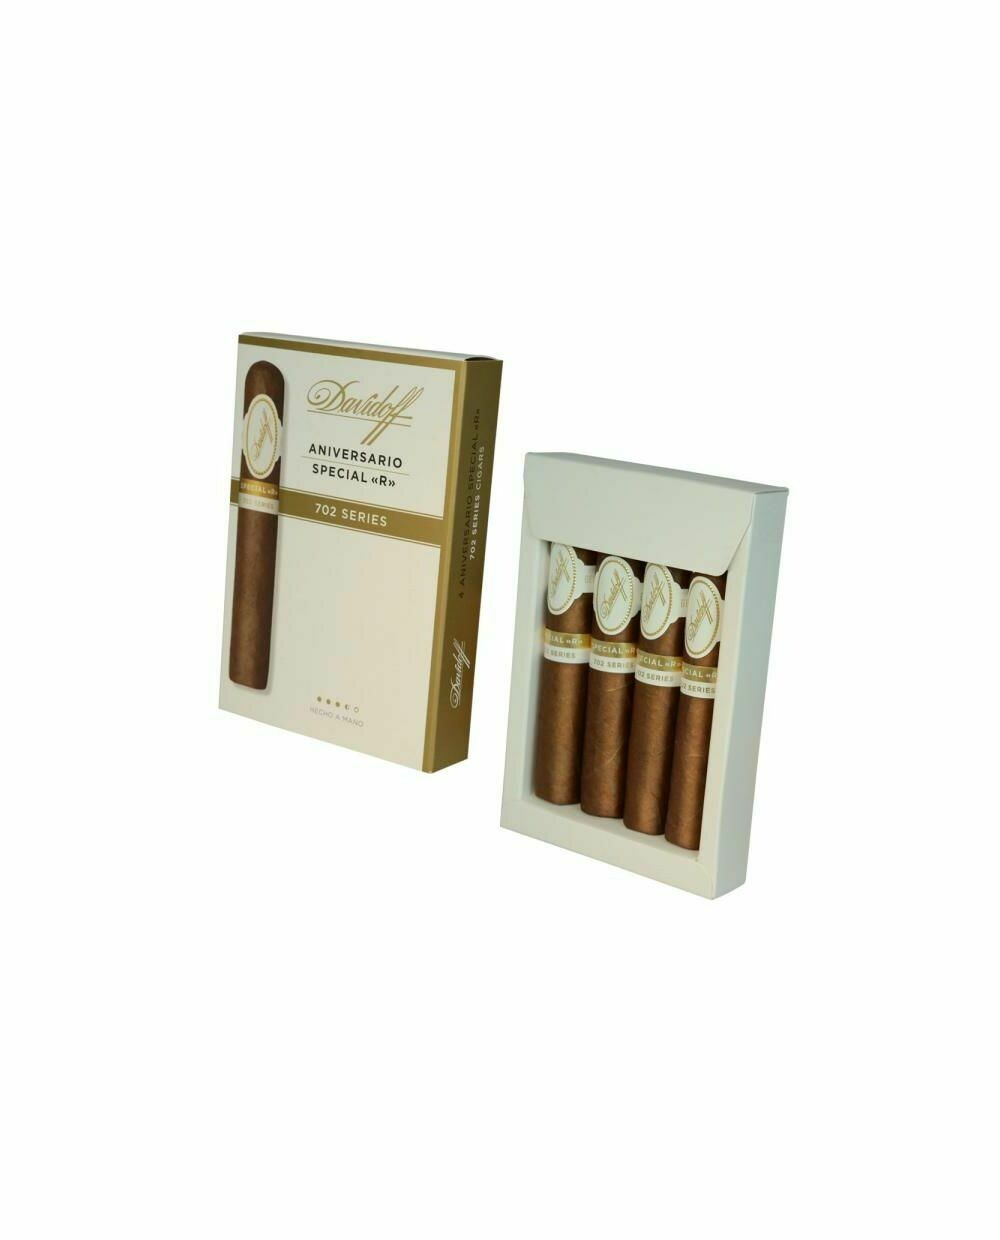 Davidoff 702 Series Special R 4-Pack